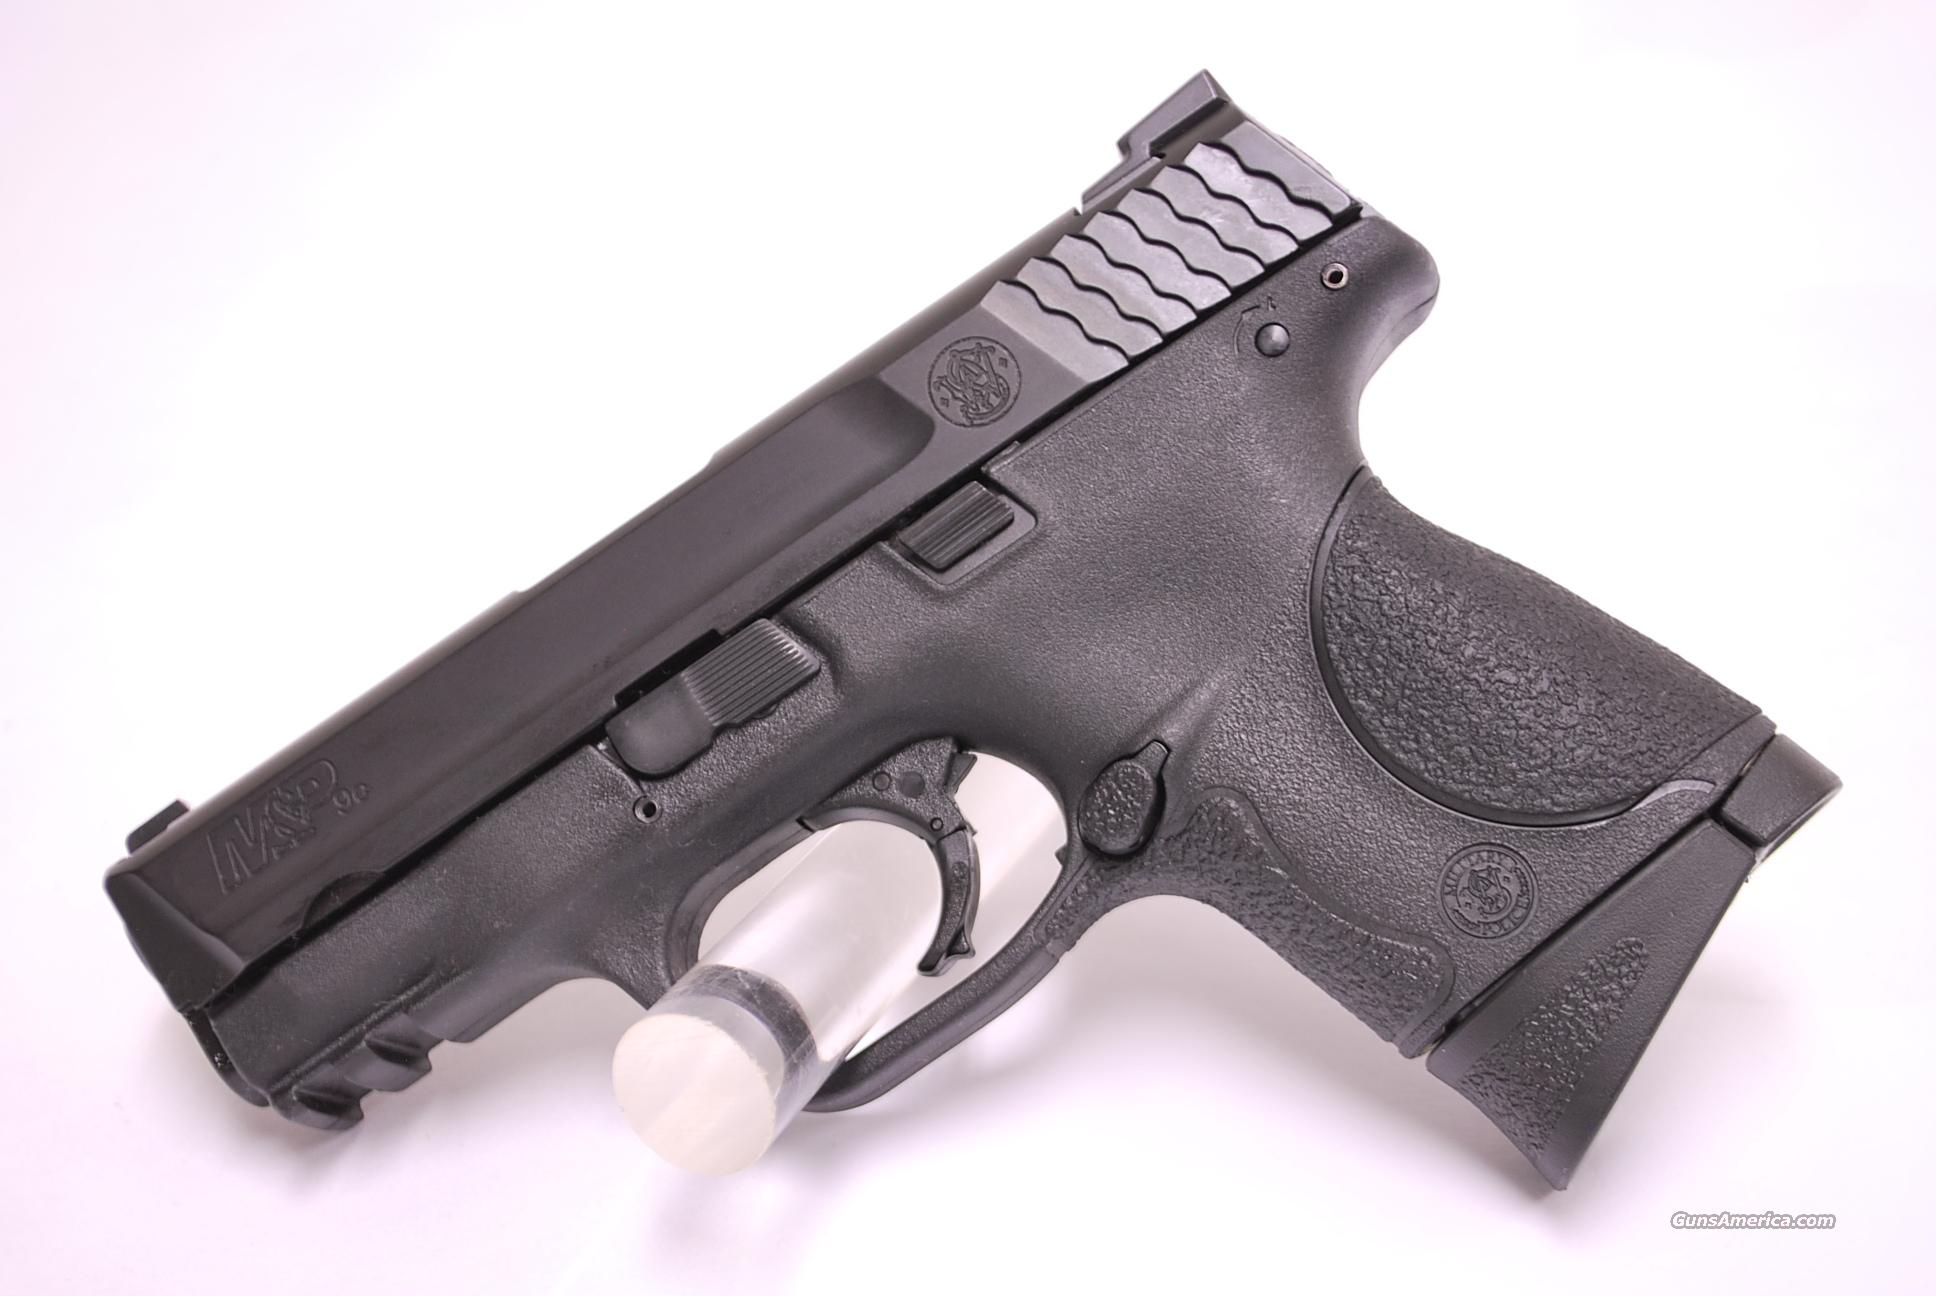 Smith and Wesson M&P9c,9mm mp 9 sw S&W  Guns > Pistols > Smith & Wesson Pistols - Autos > Polymer Frame